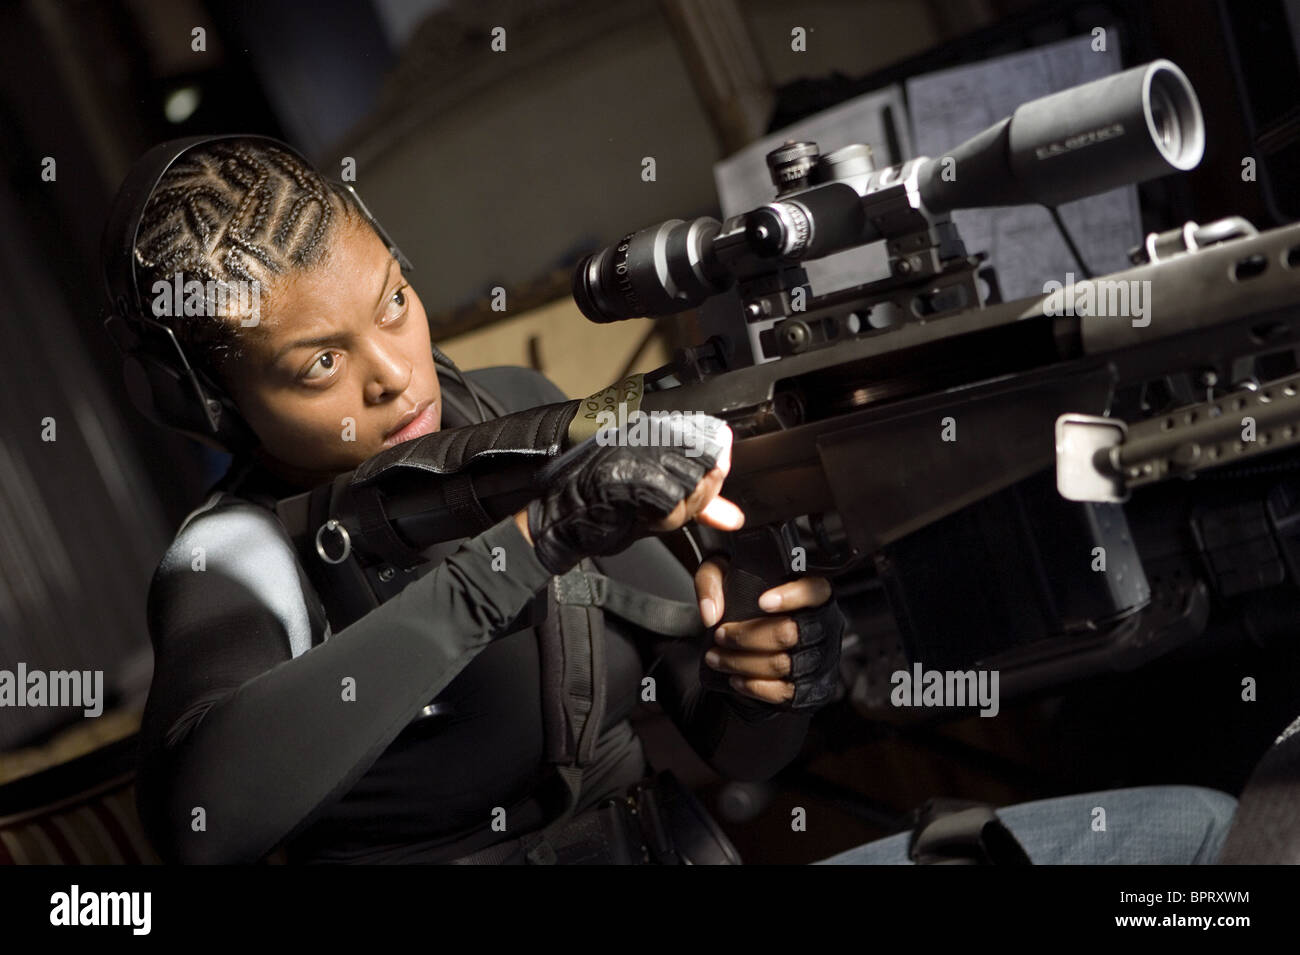 TARAJI P. HENSON SMOKIN' ACES; SMOKING ACES (2006) - Stock Image